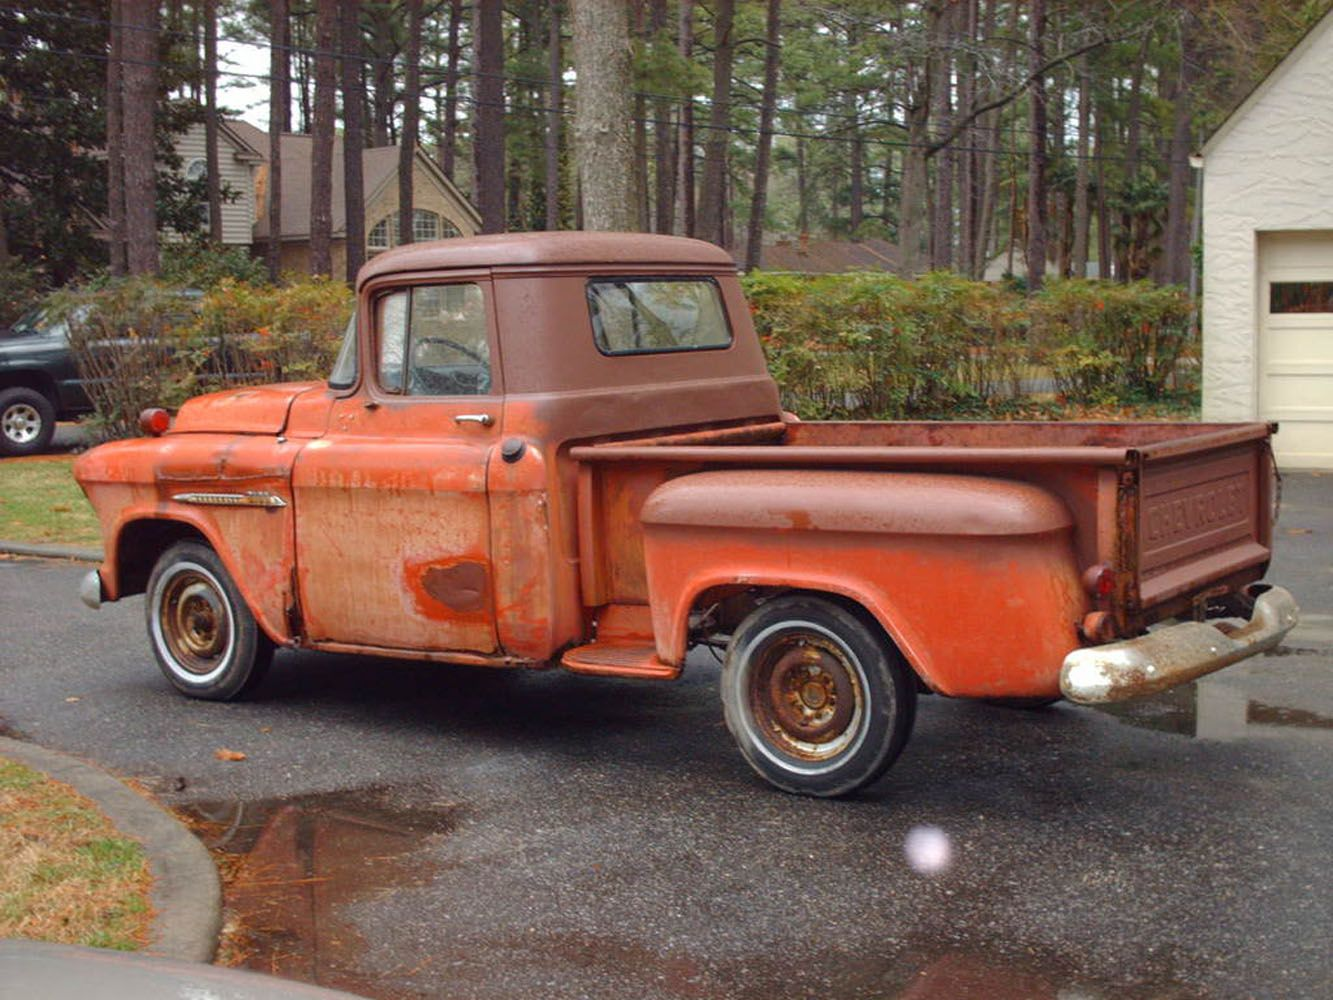 1955 chevy truck 1955 chevy 3200 truck other pickups photo 1 55 59 chevrolet task force trucks pinterest chevy 55 chevy truck and chevy pickups